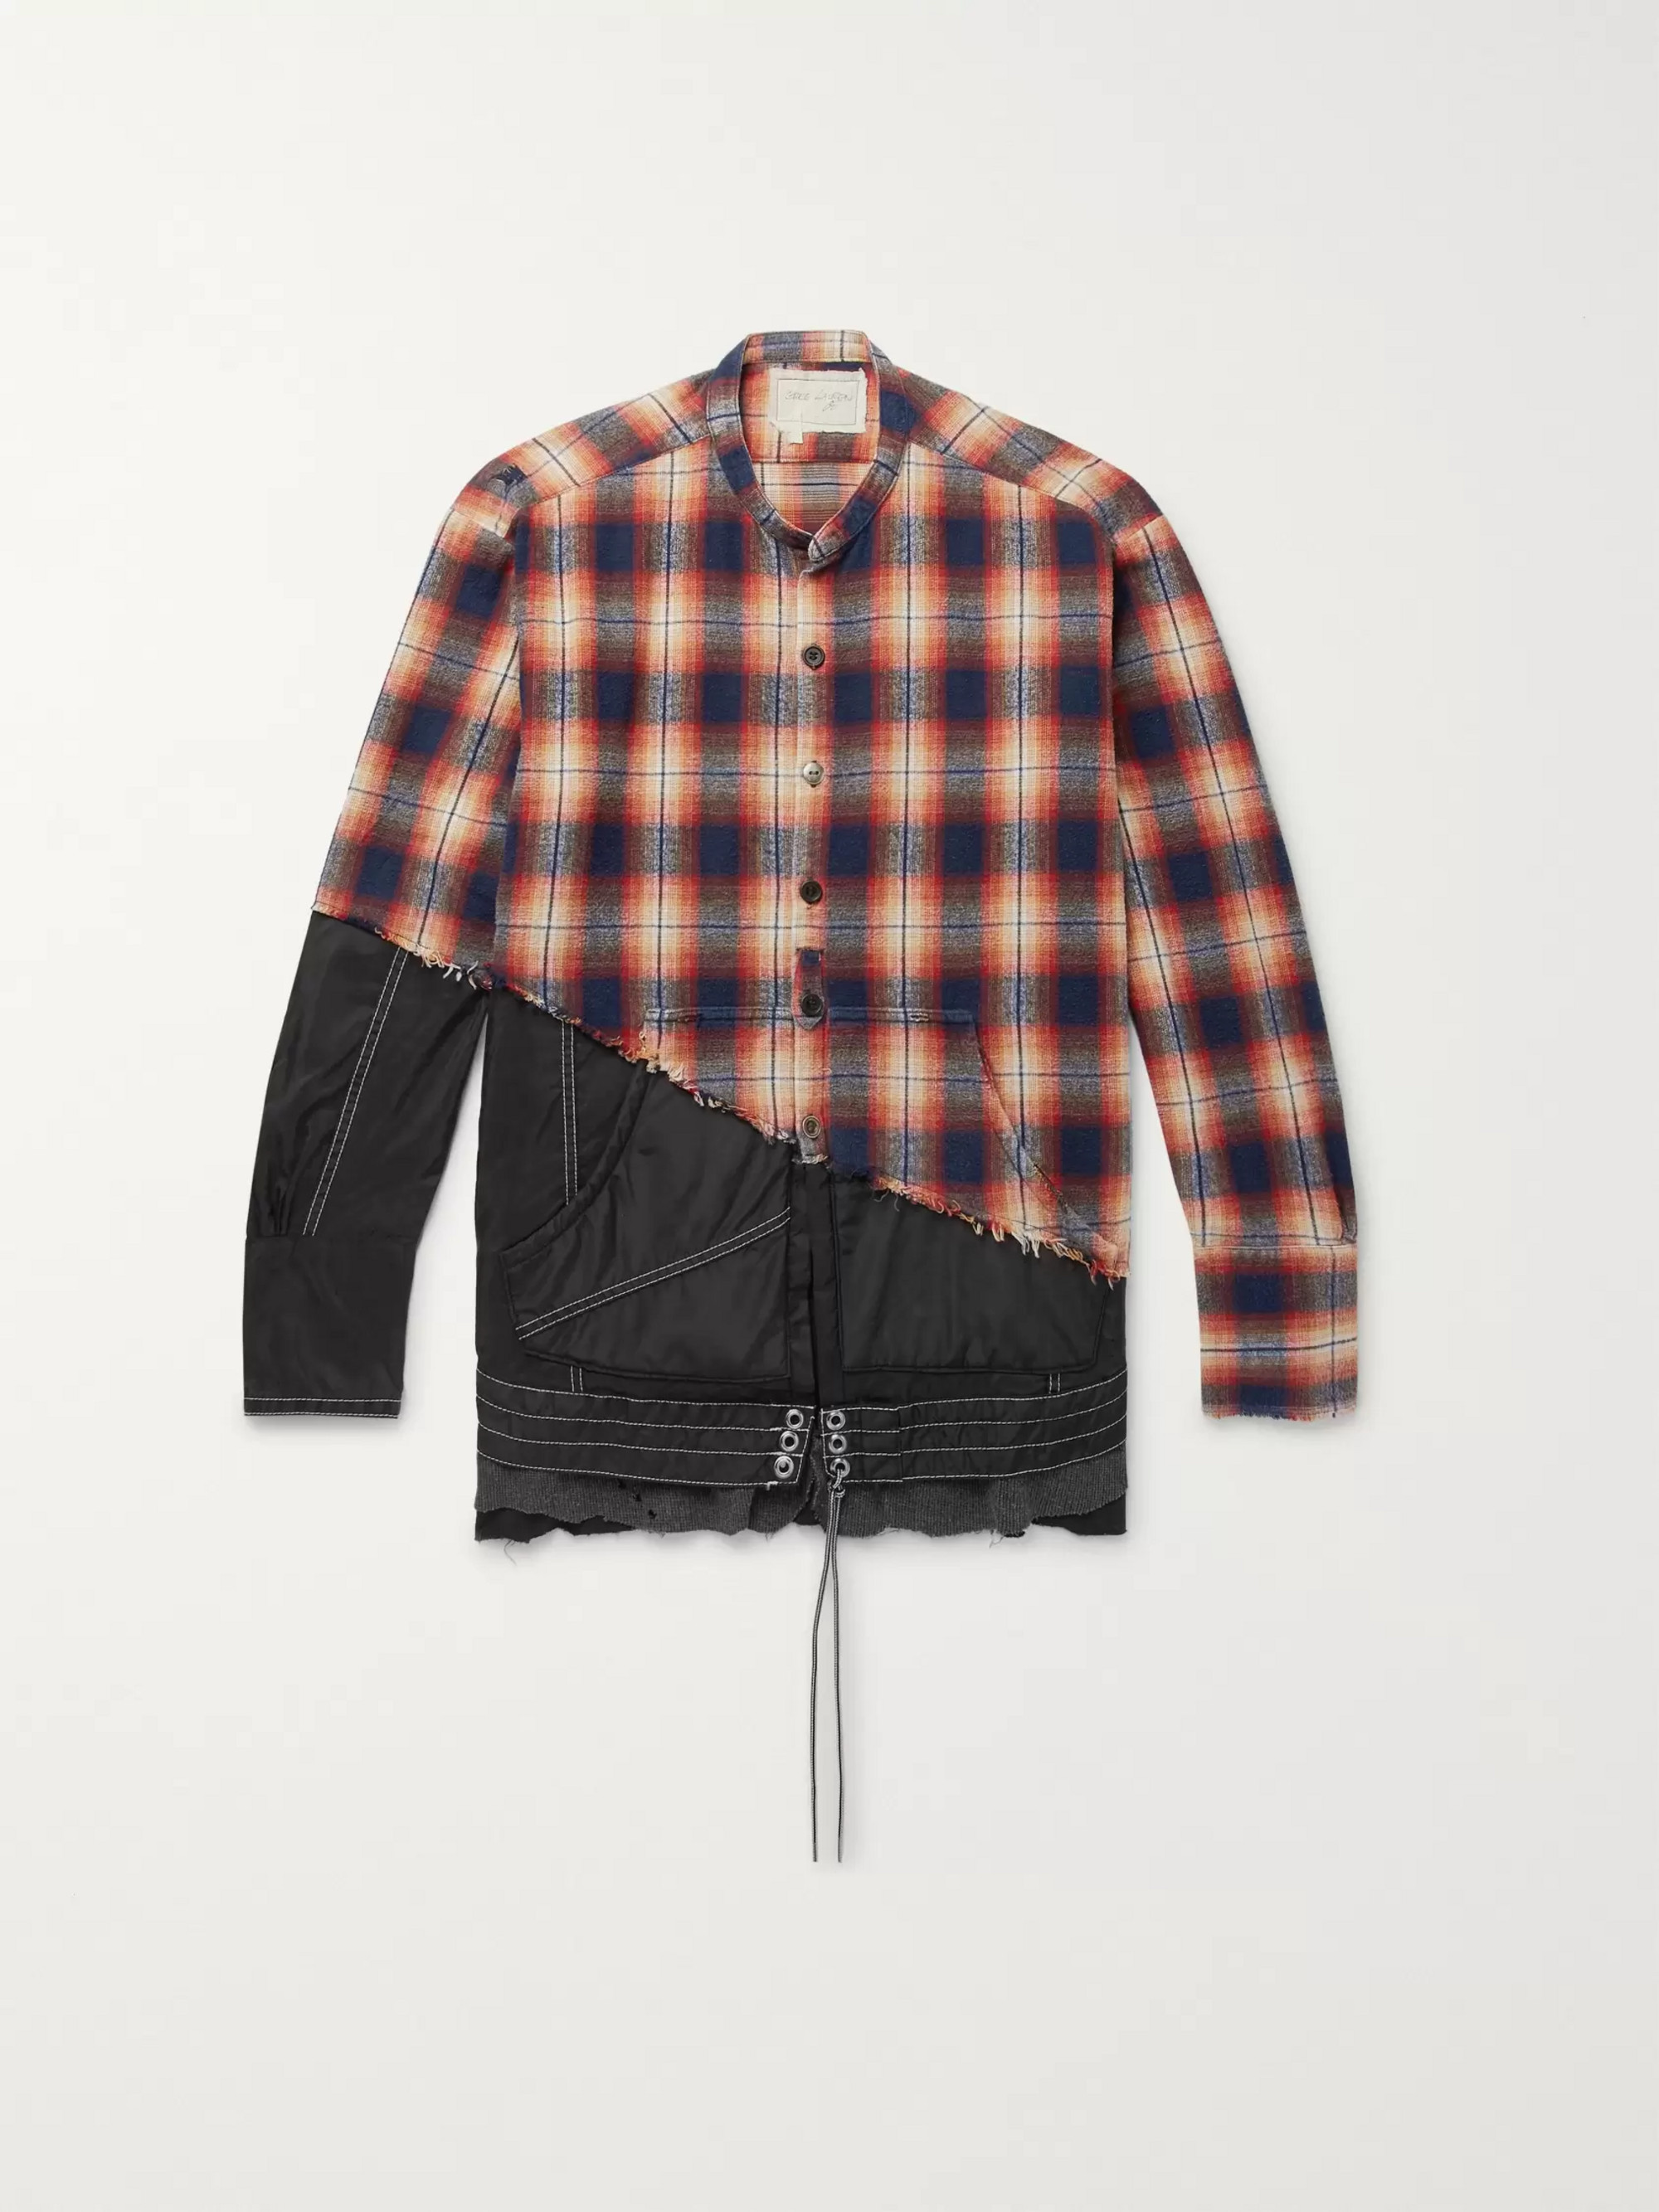 Greg Lauren + Birdwell Grandad-Collar Panelled Distressed Checked Cotton-Flannel and Nylon Shirt